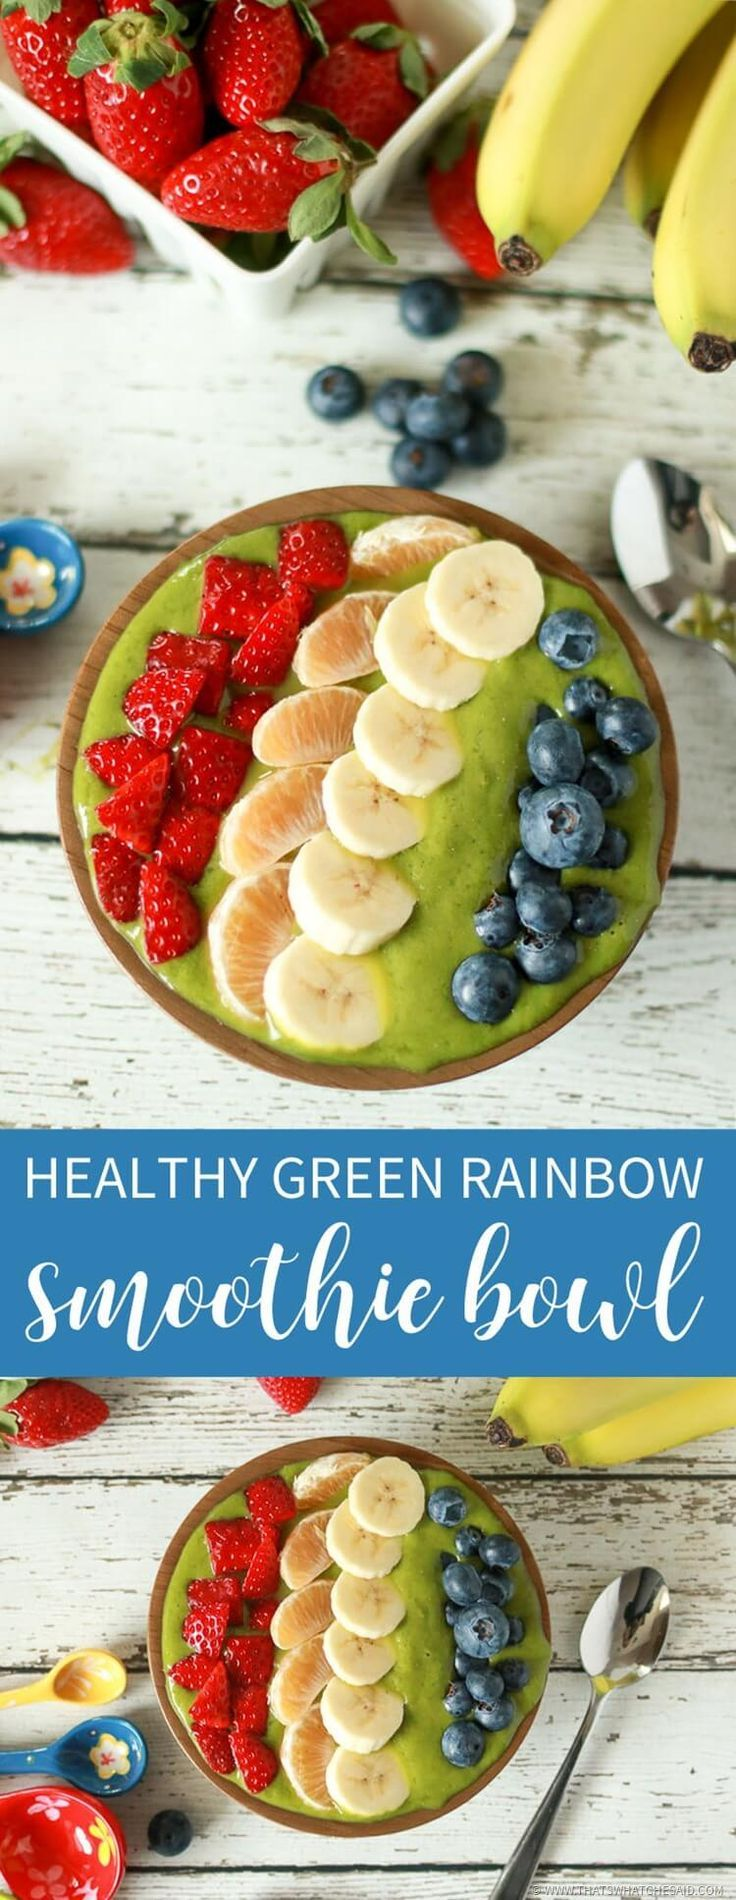 Get on track this year with this healthy green smoothie bowl. Hidden veggies that taste like a tropical rainbow!  Grab a spoon! Everything you need at the best prices can be found at ALDI.  Healthy eating does not need to break your budget!  #ad #ILikeALDI